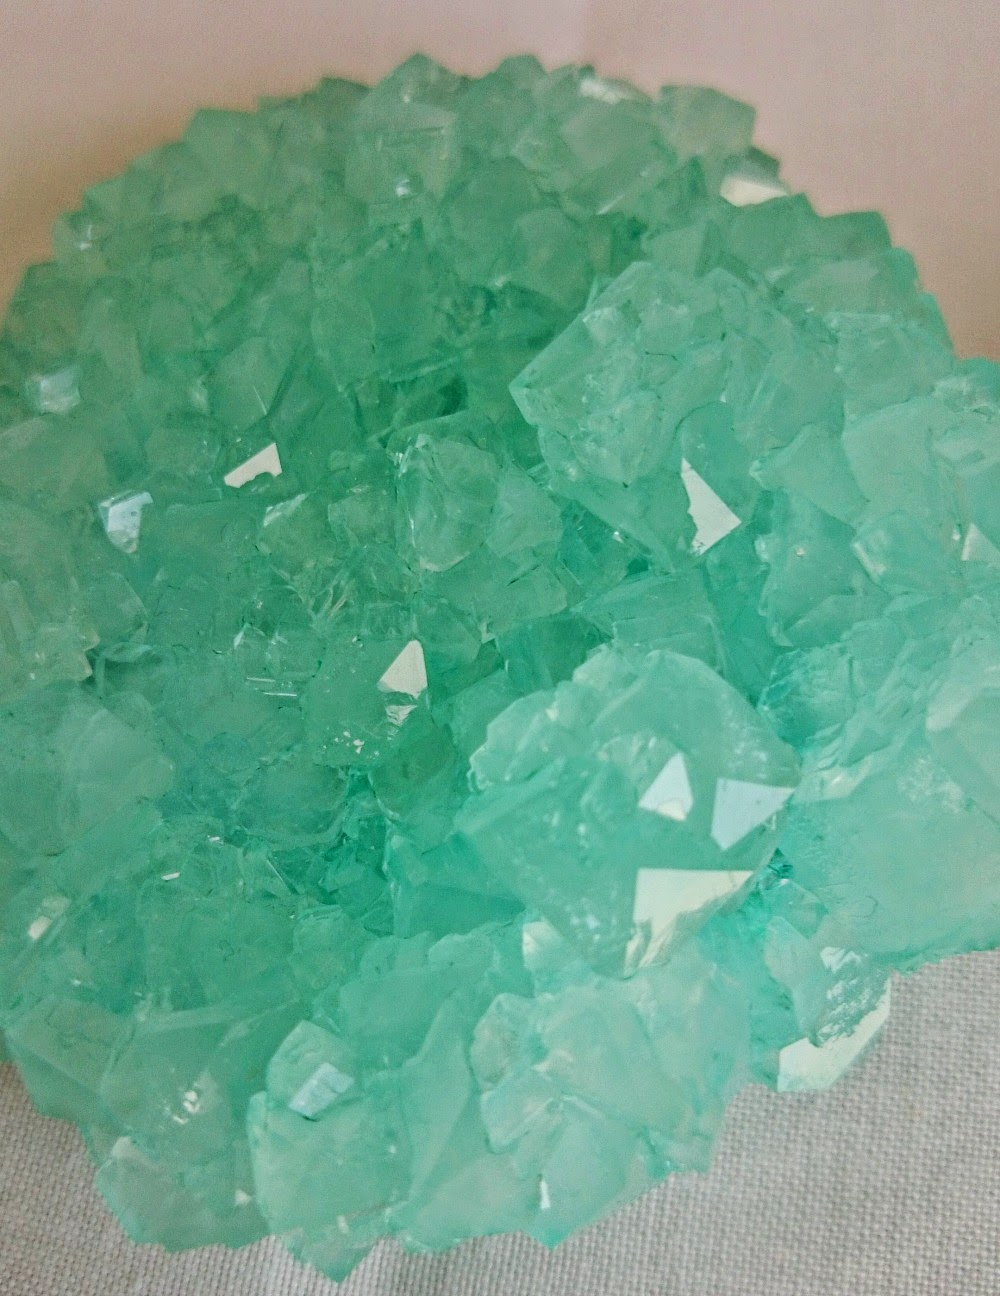 Grow crystals with borax